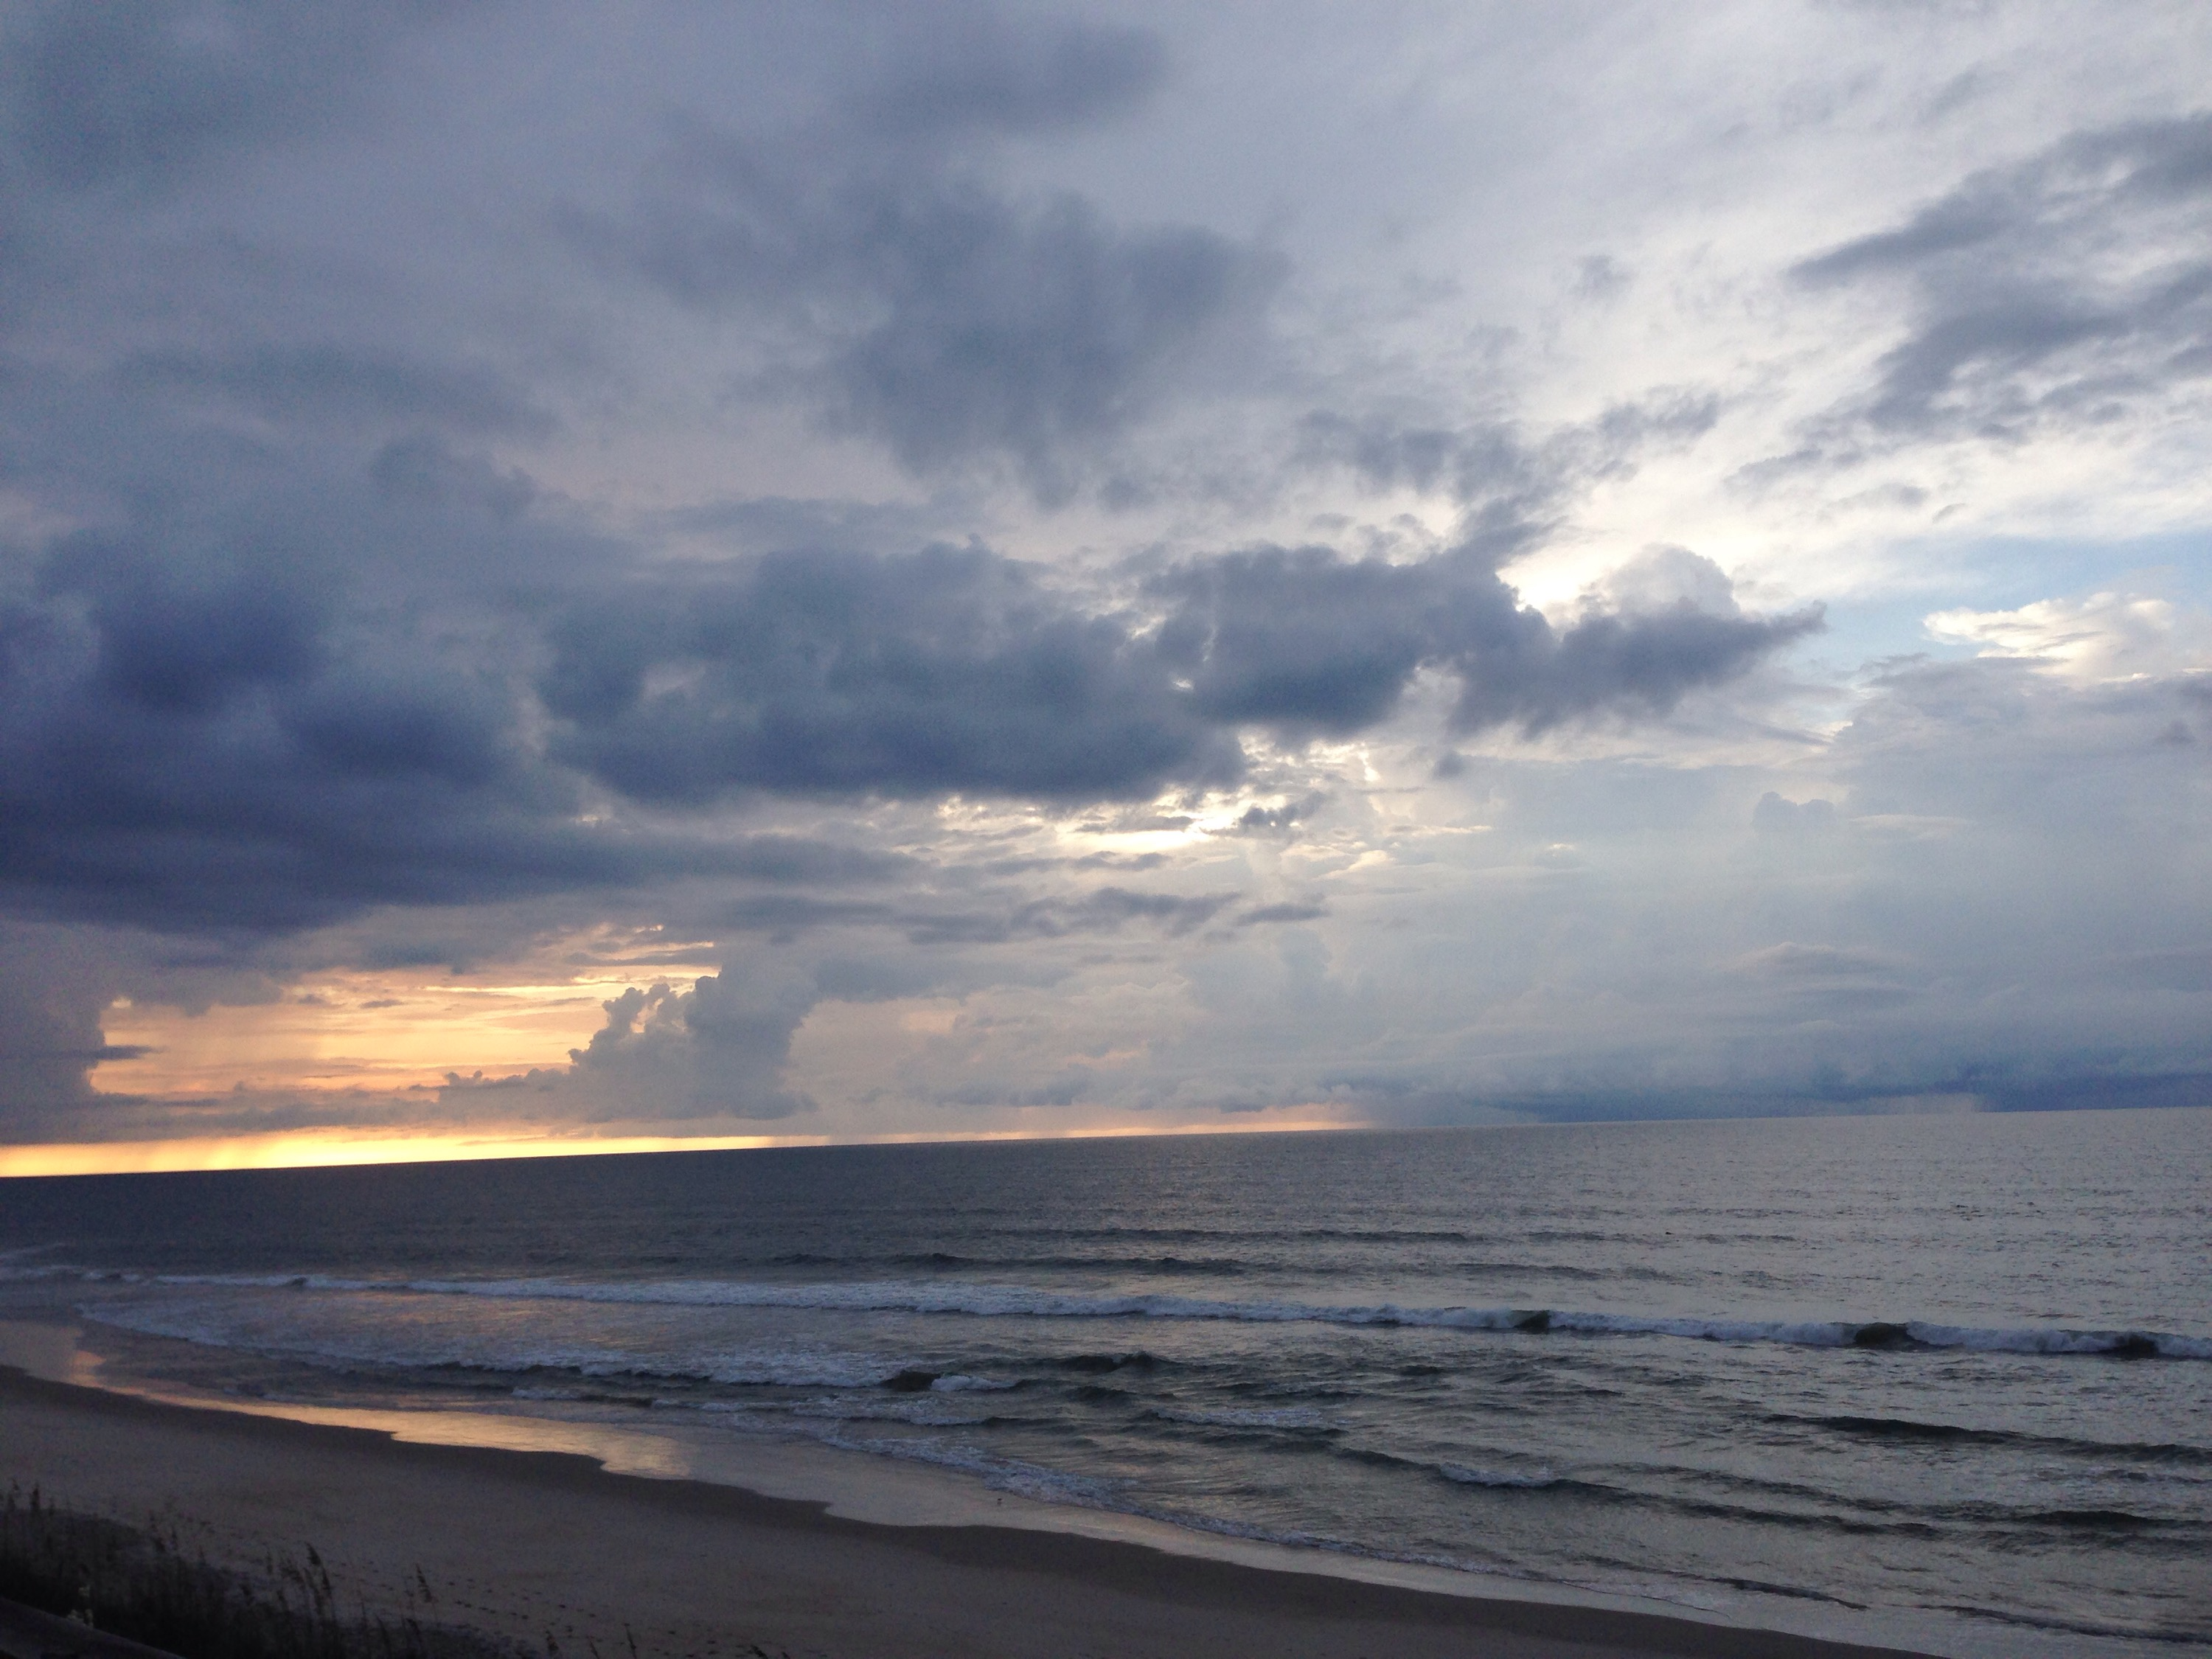 storm brewing off topsail island